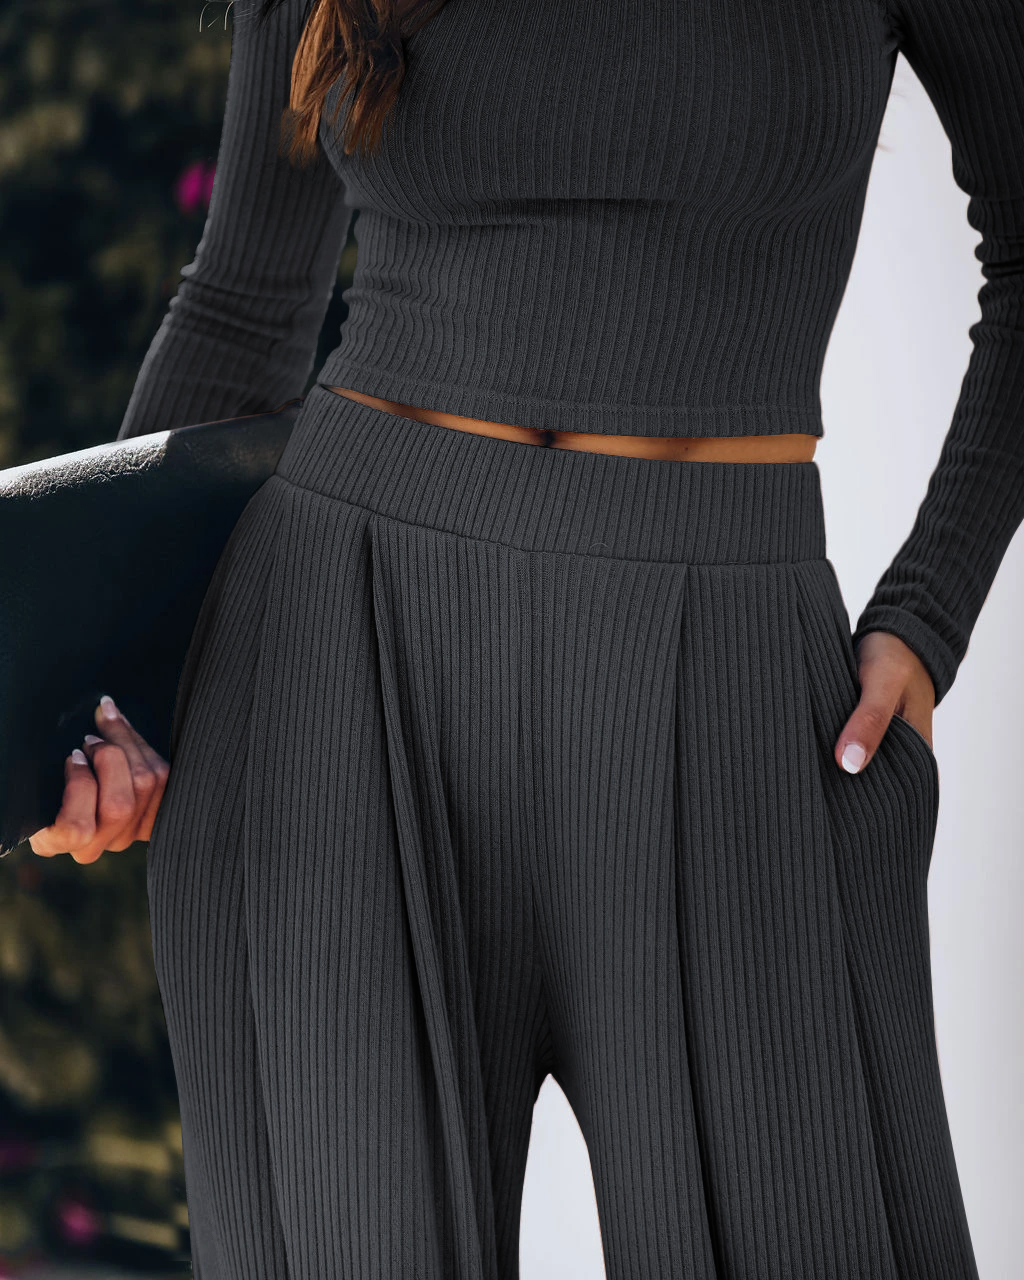 2020 Women's Long-sleeved Trousers Suit